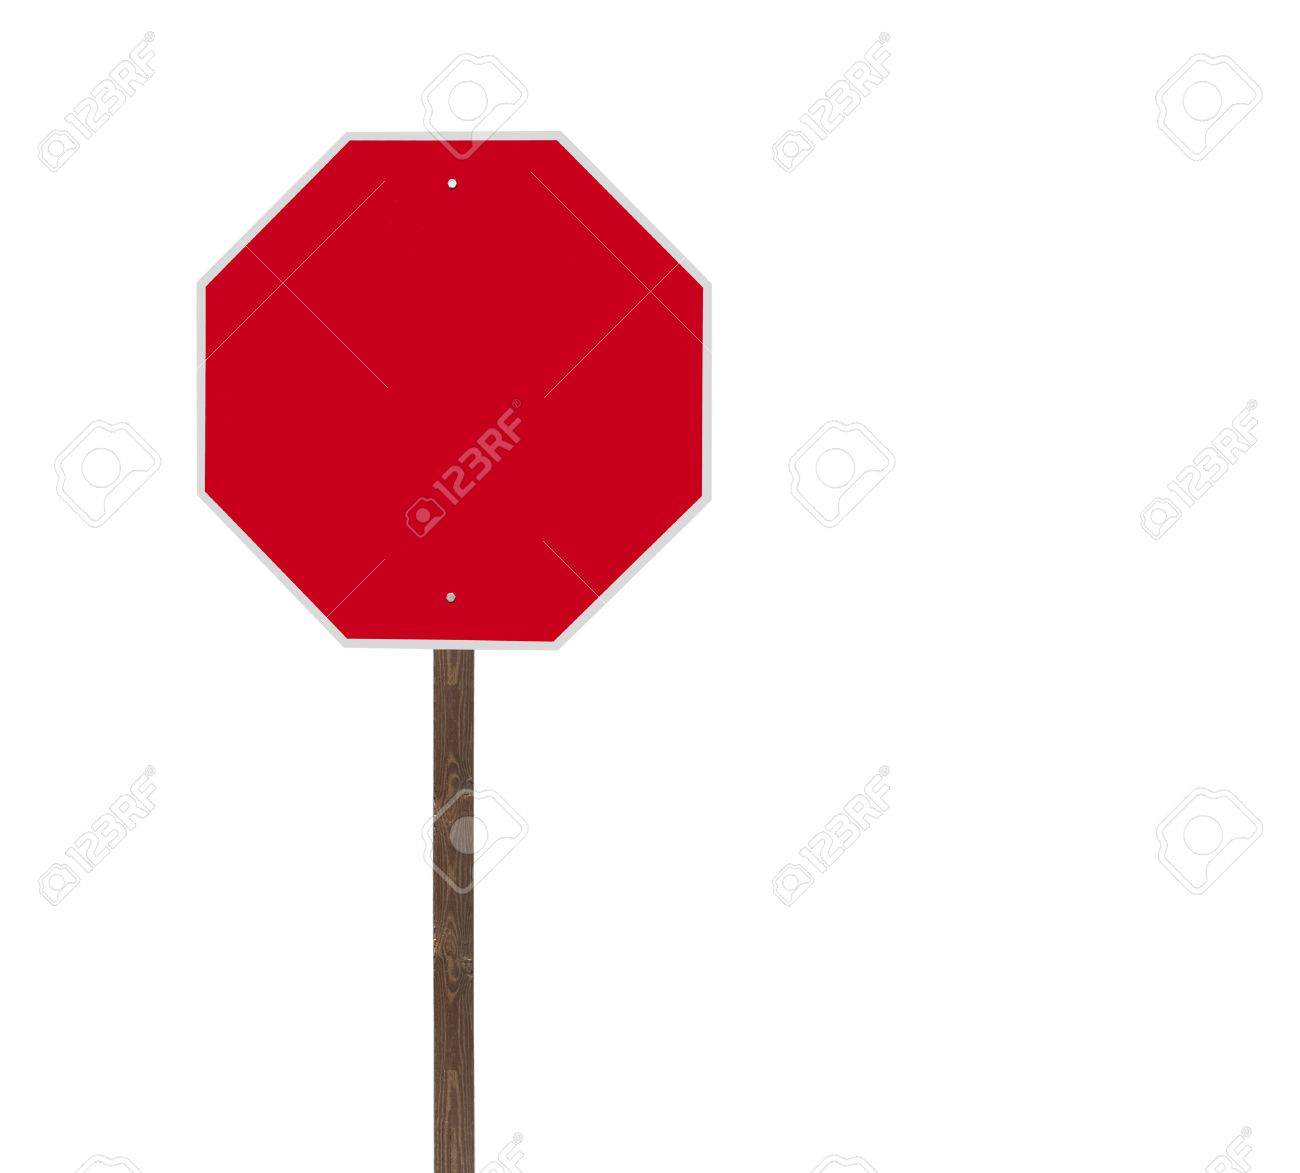 Tall blank isolated stop sign on a wooden post